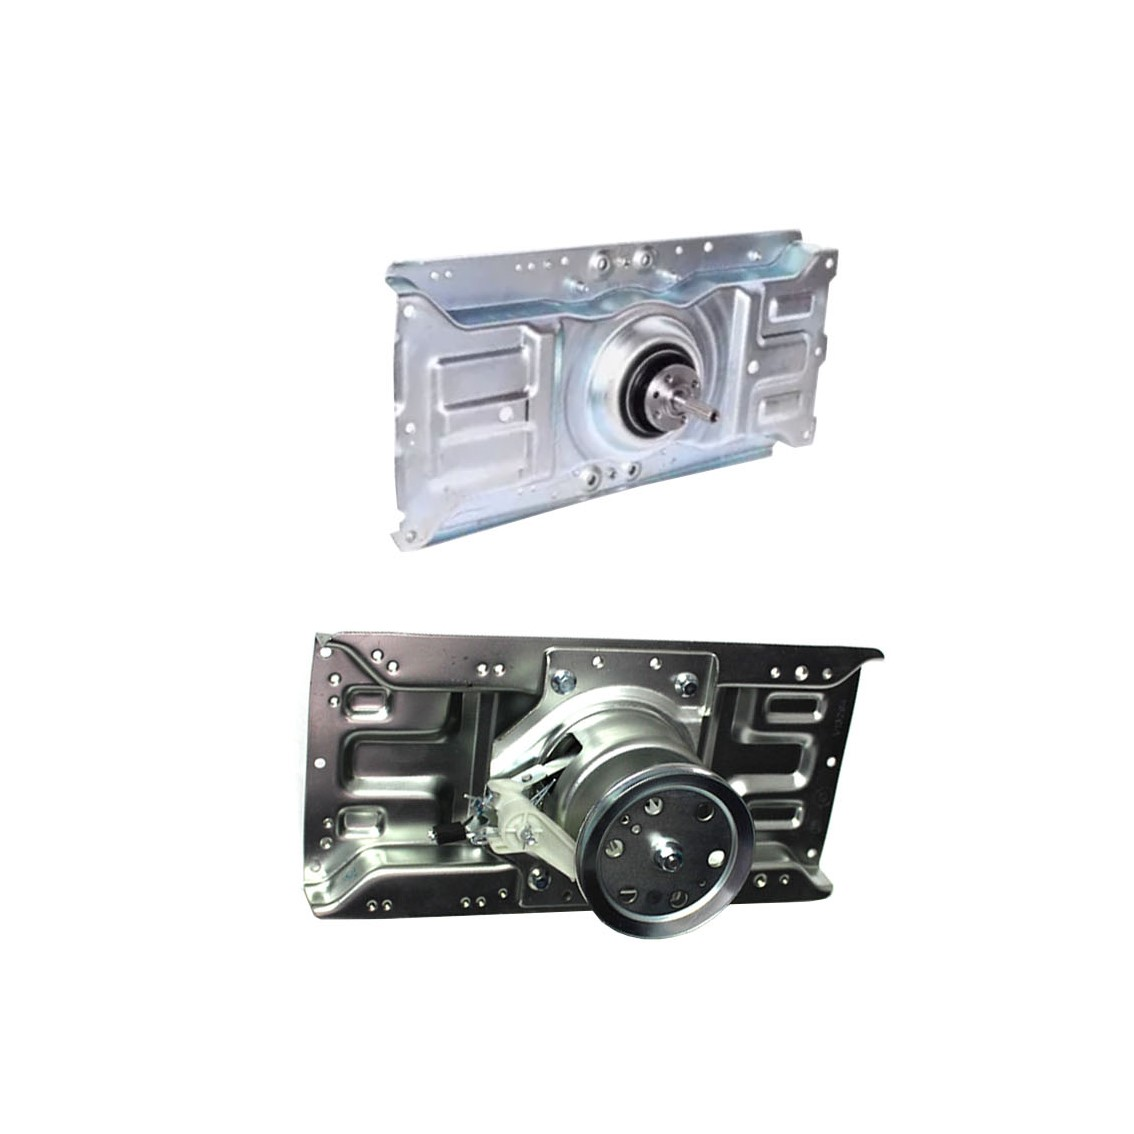 Home Laundry & Dishwasher Gearboxes: Complete & Parts